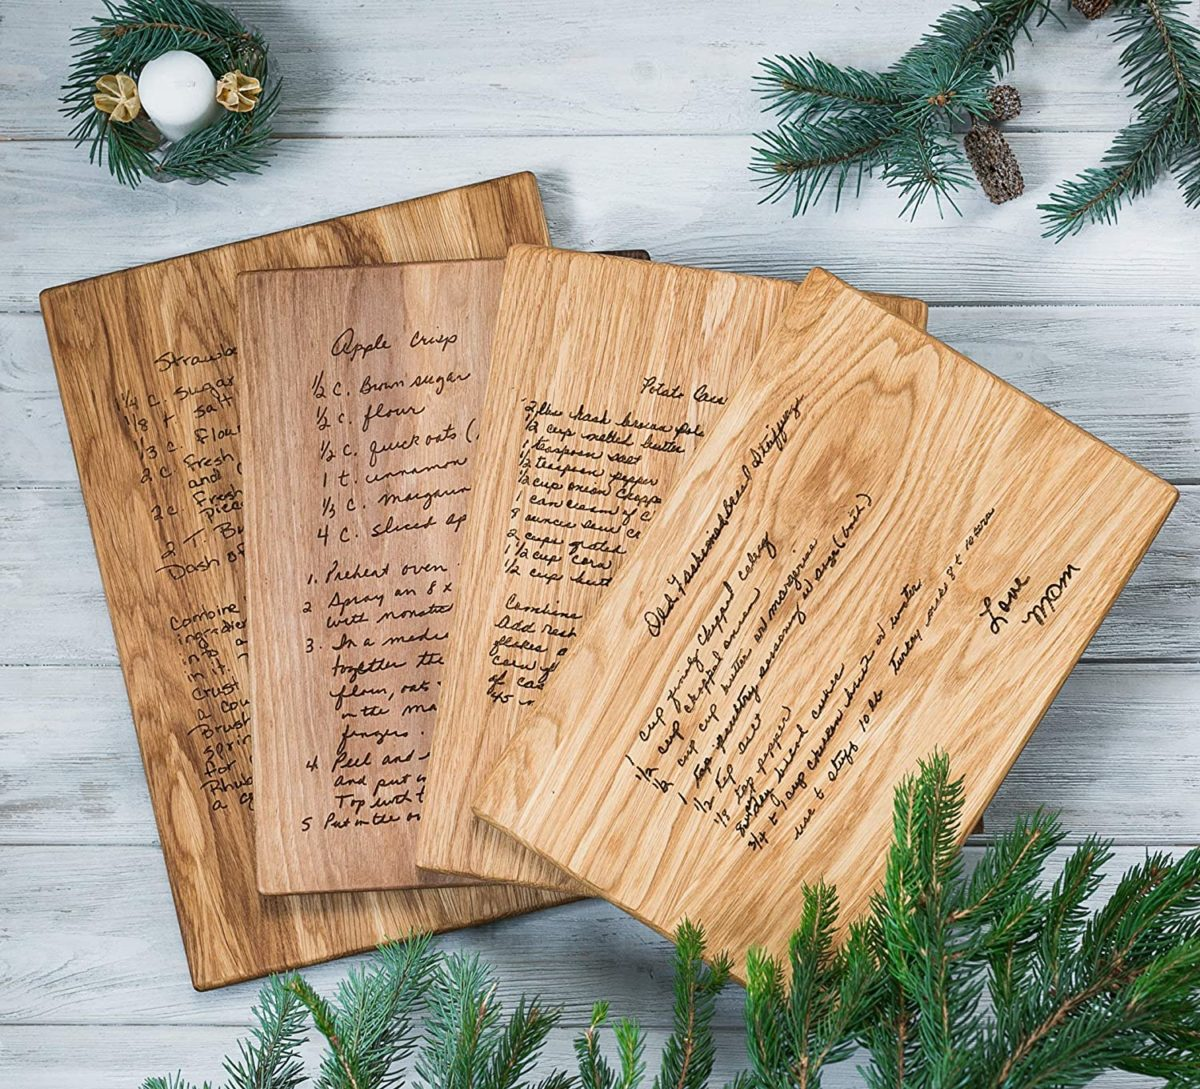 make some smile and feel especially loved this christmas with these 30 homemade and handmade gift ideas you can get on amazon